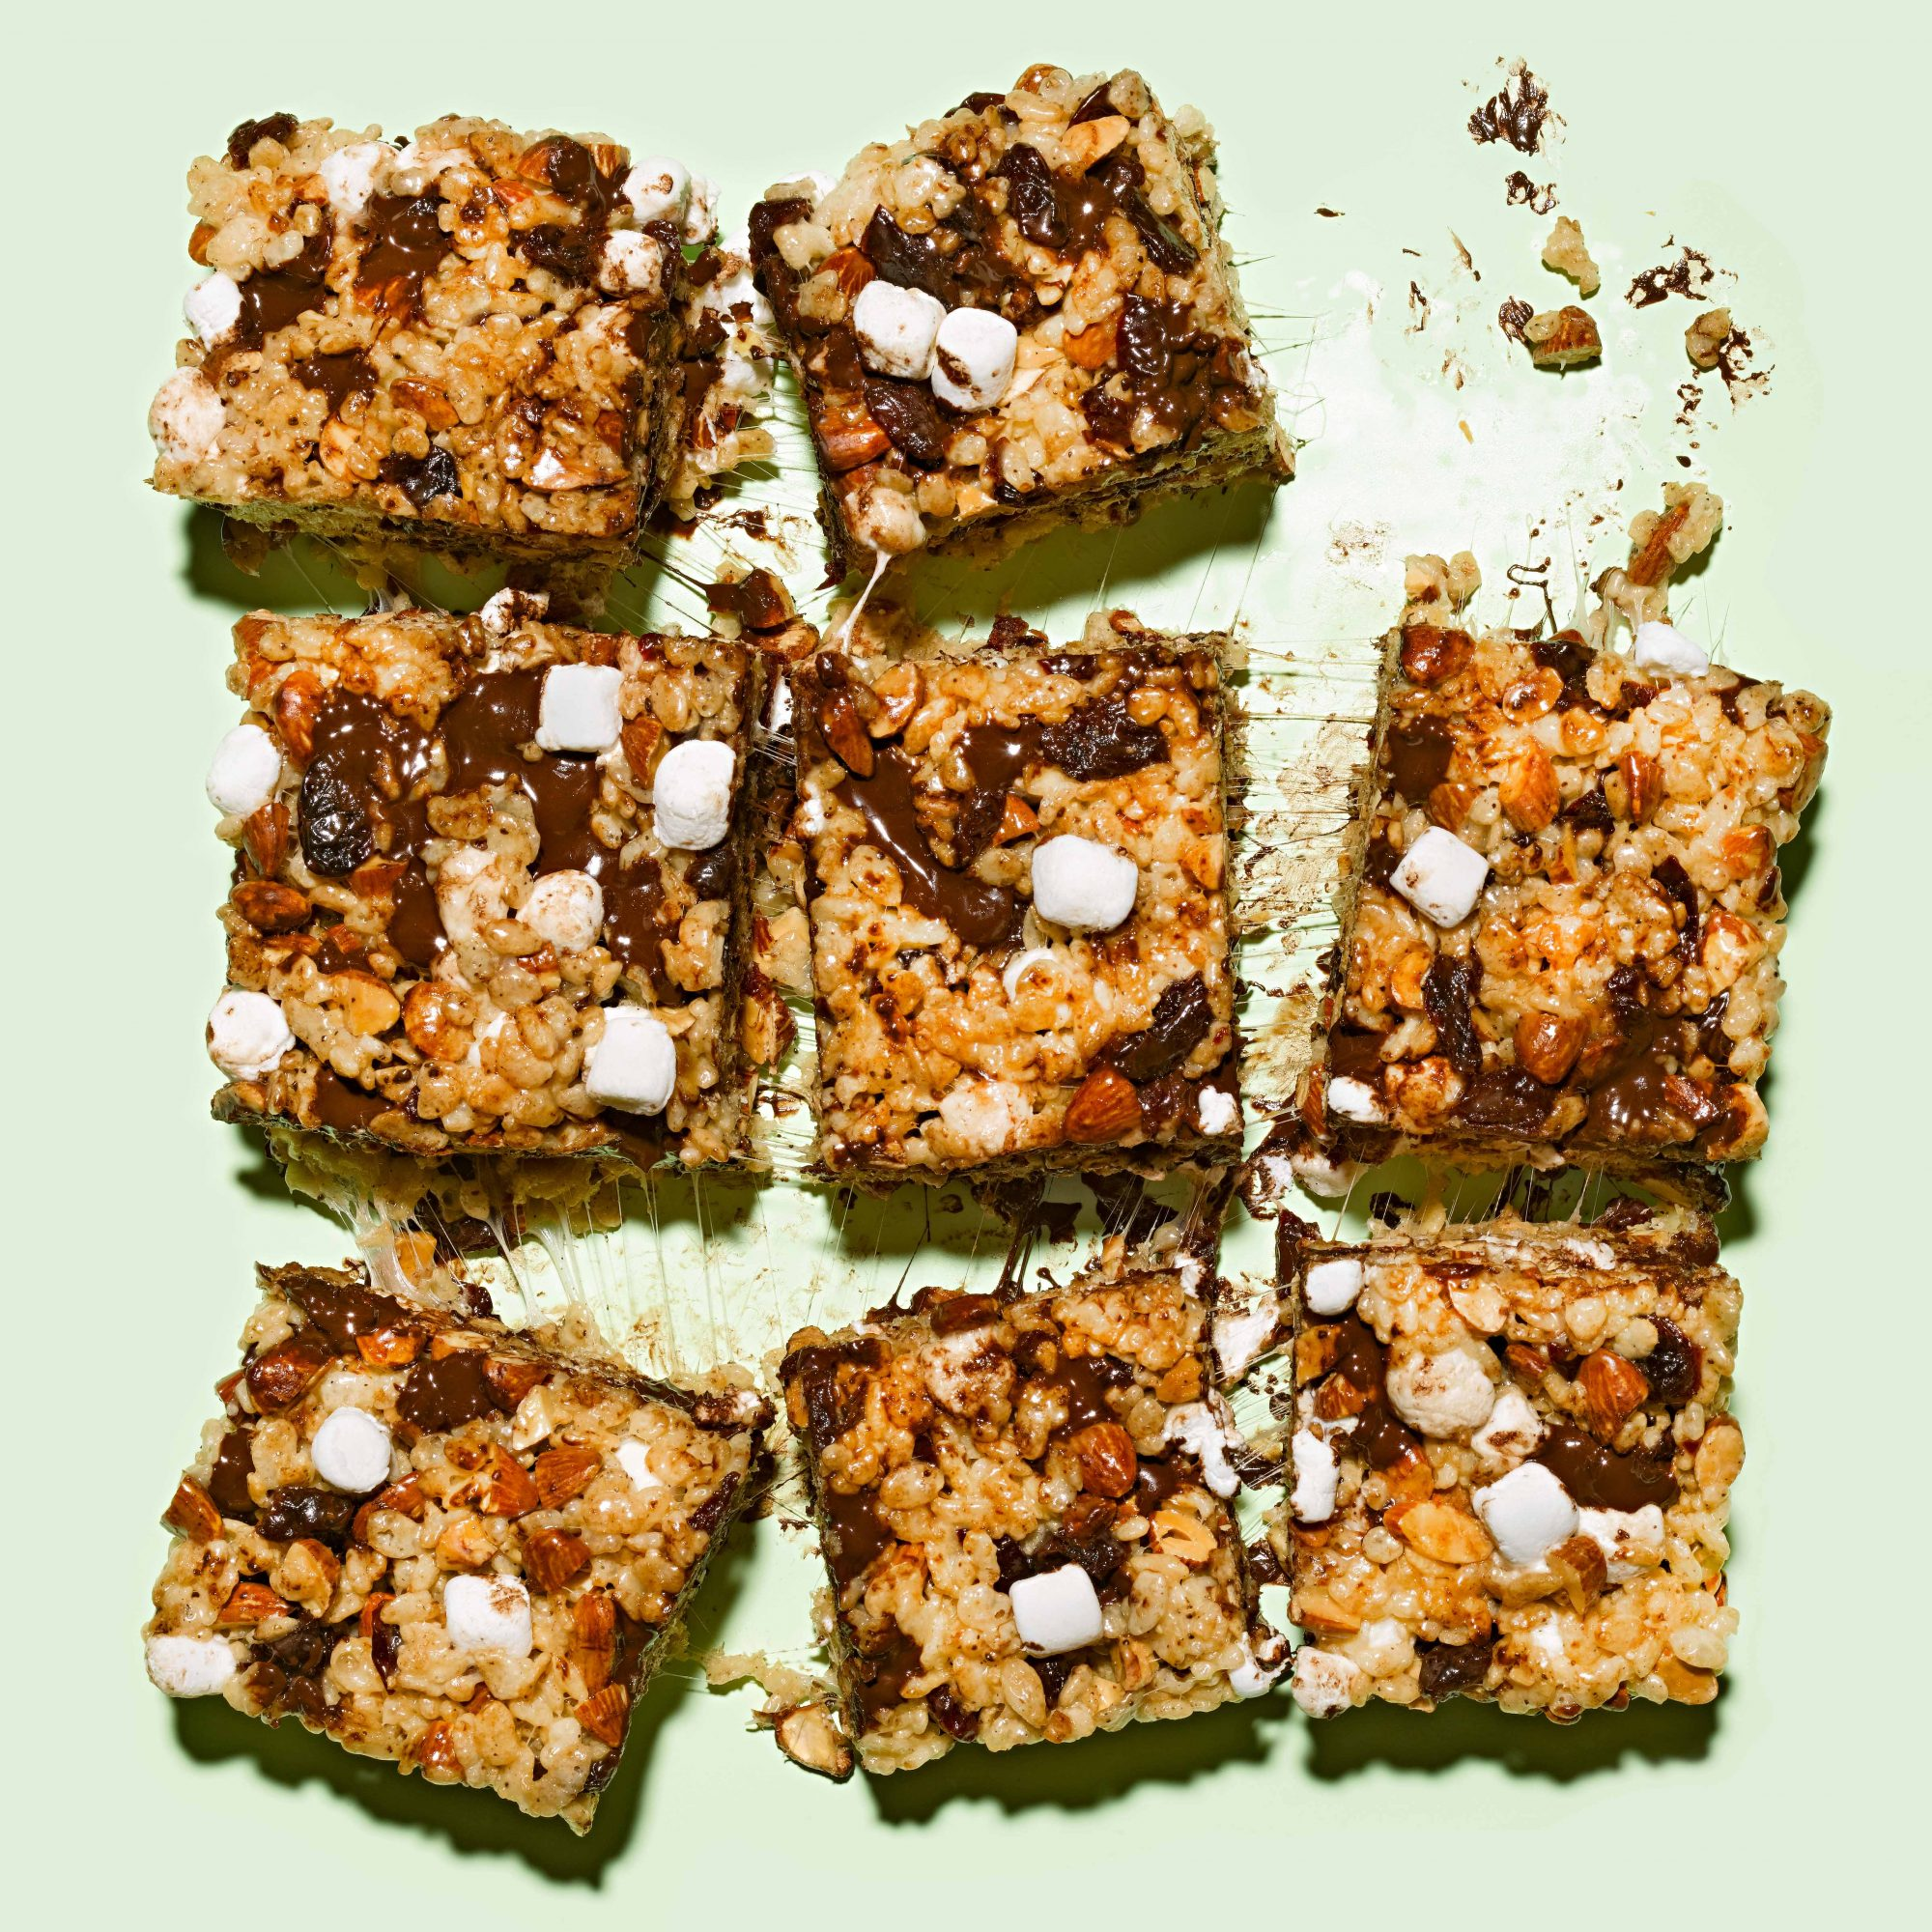 Coffee-Marshmallow Crispies with Chocolate, Cherries & Almonds